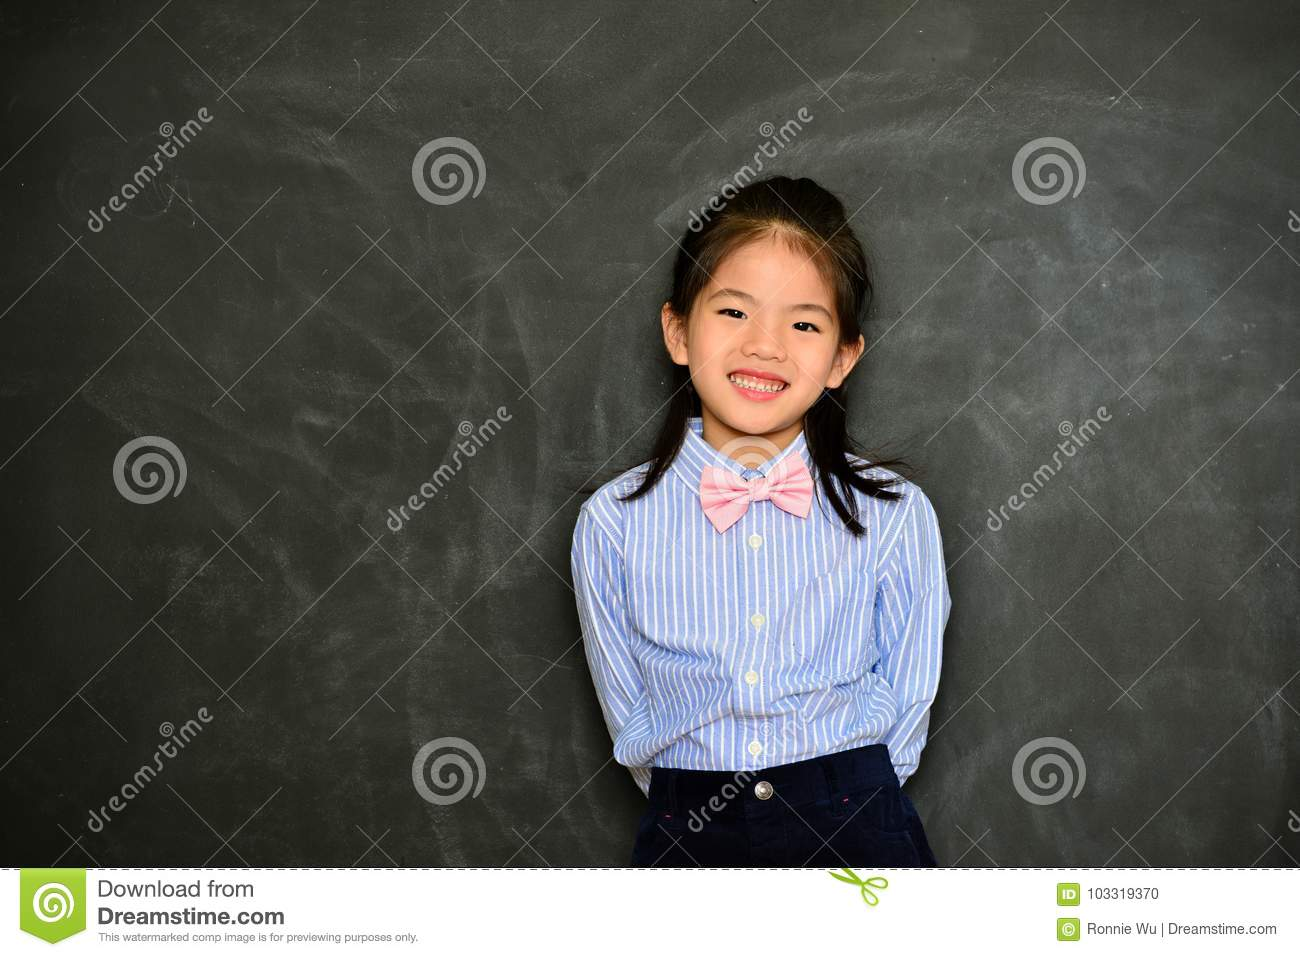 c5eec4ee141b Beautiful pretty little girl kid dress up as school teacher standing in  chalk blackboard background.